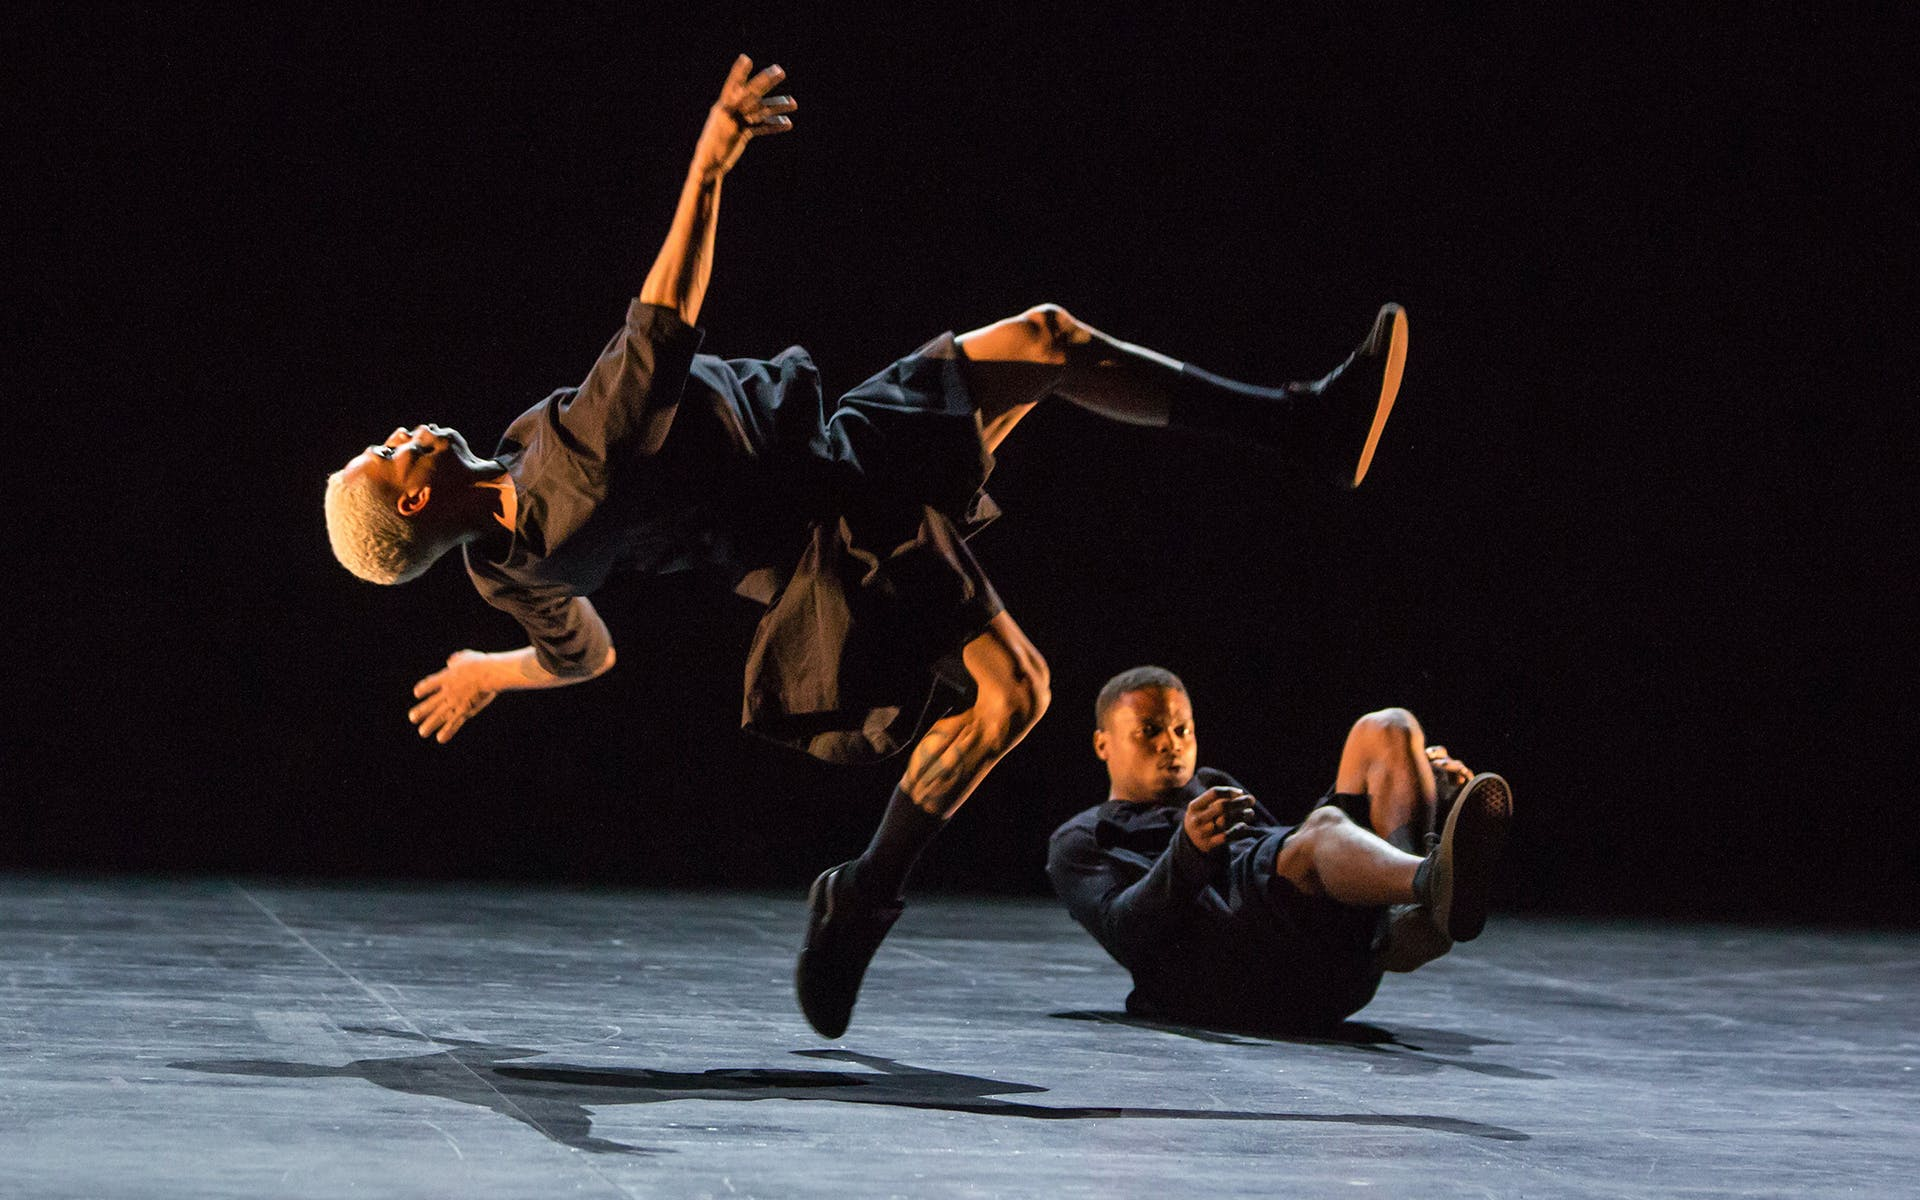 One dancer jumping in mid air and another dancer on the ground.